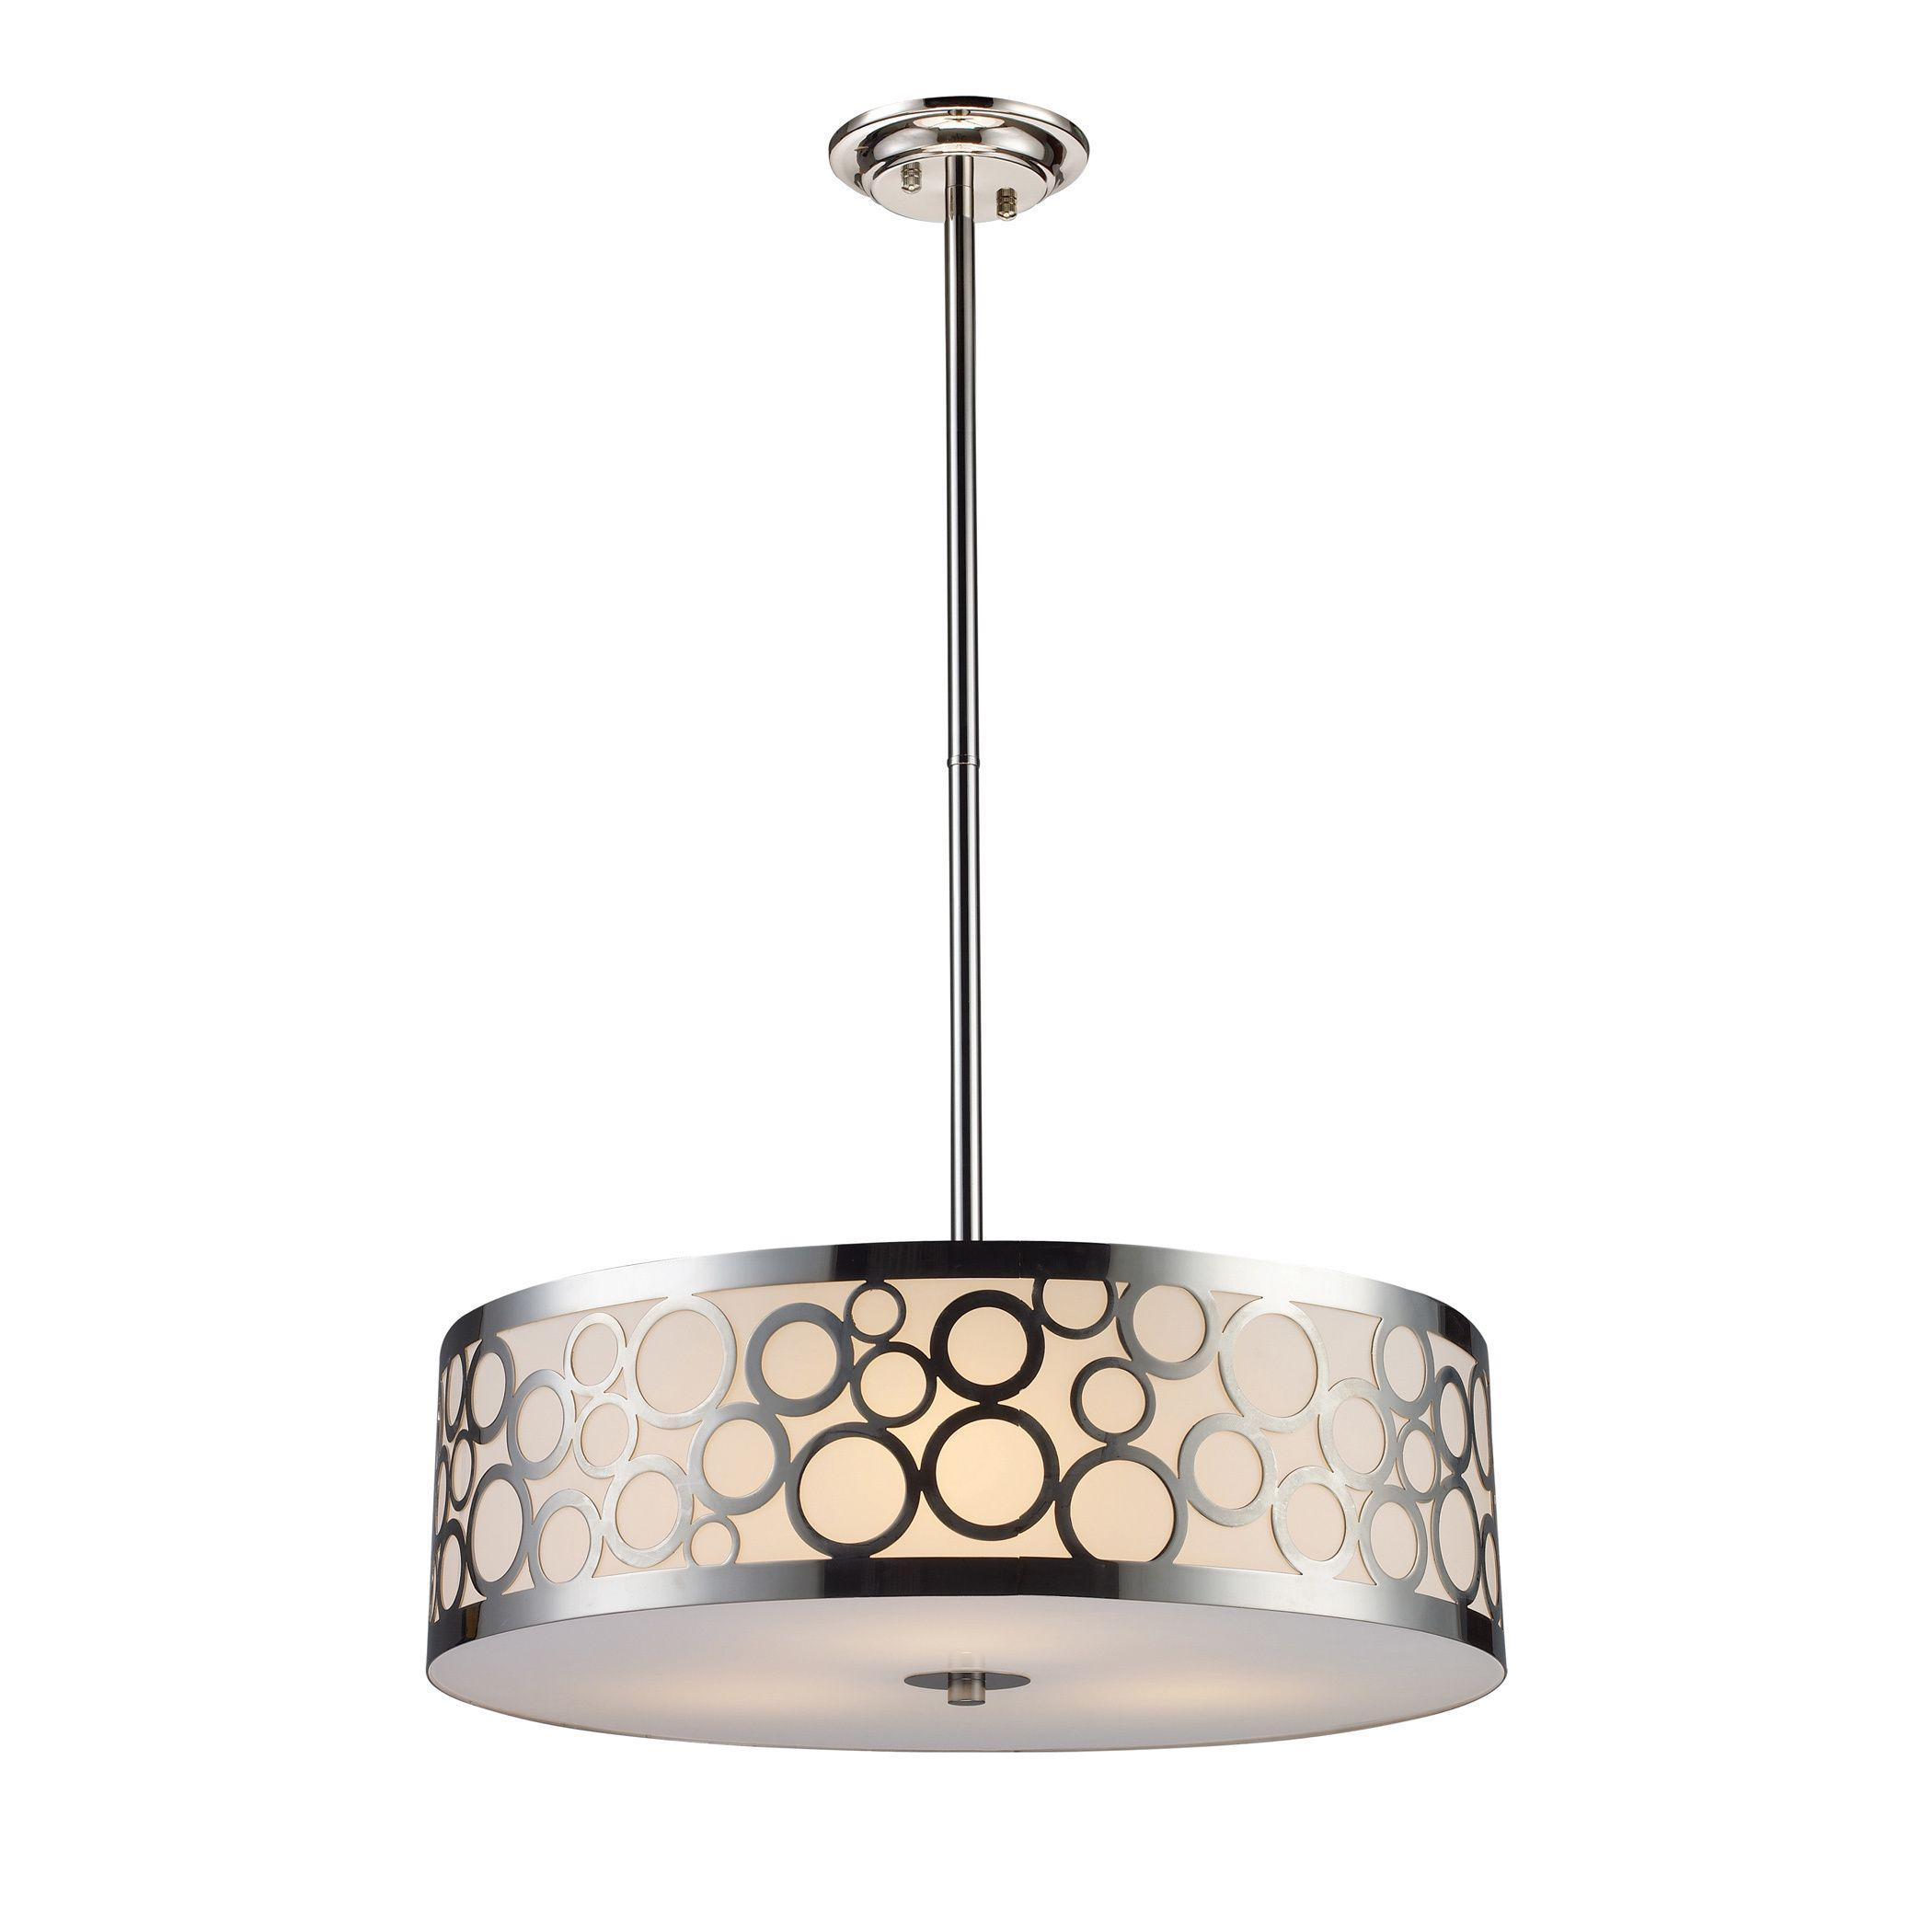 Varying Circular Accents Add Retro Flair To The Retrovia Chandelier Crafted With A Rous Polished Nickel Finish This Beautiful Light Fixture Is